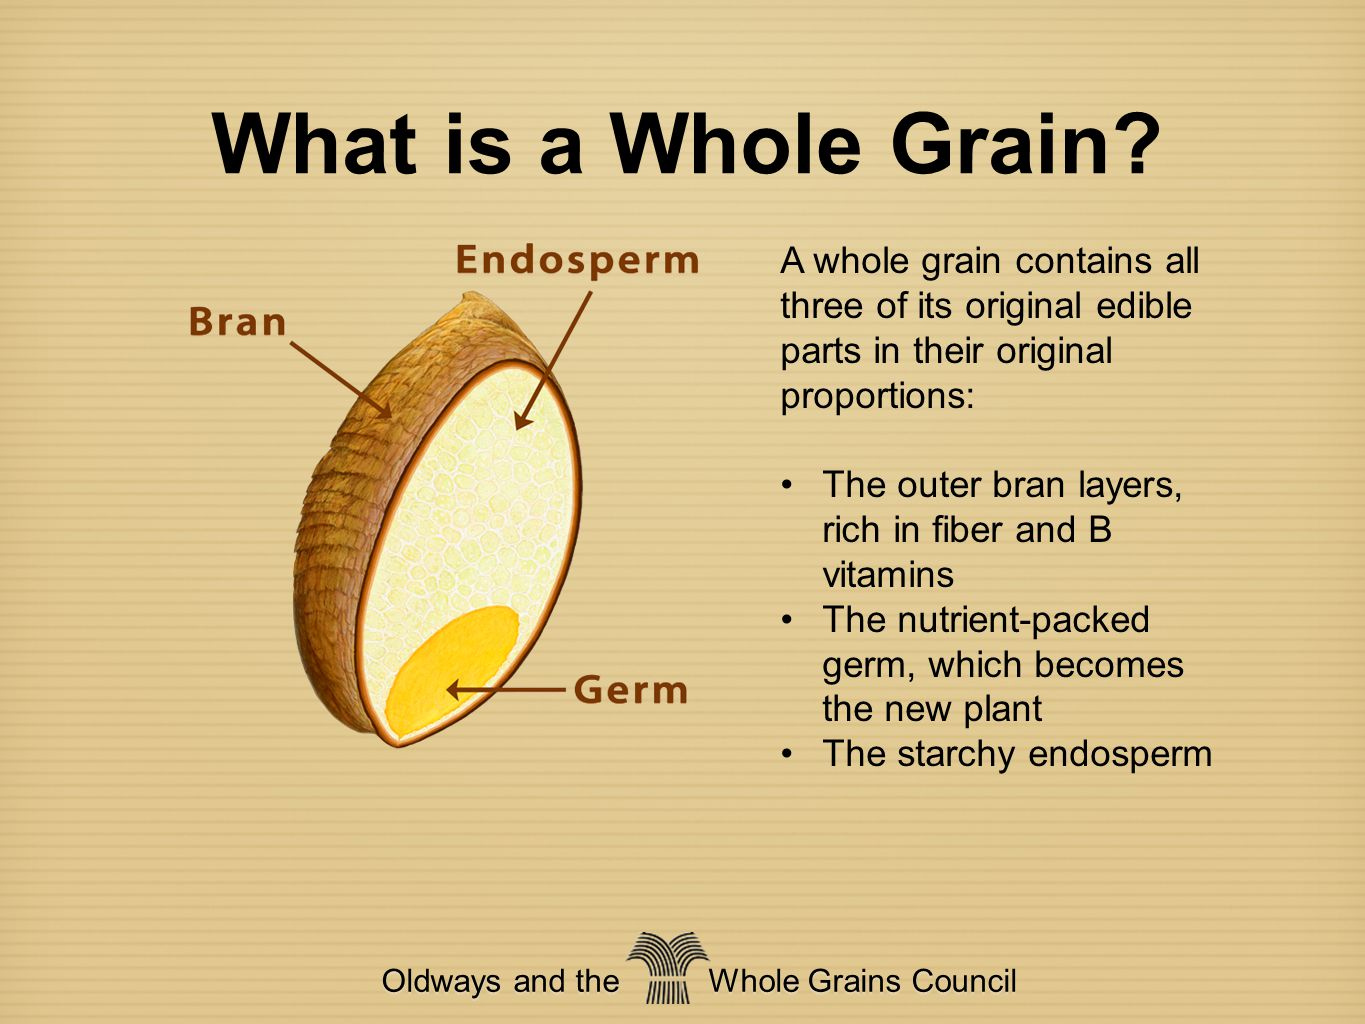 Oldways and the Whole Grains Council